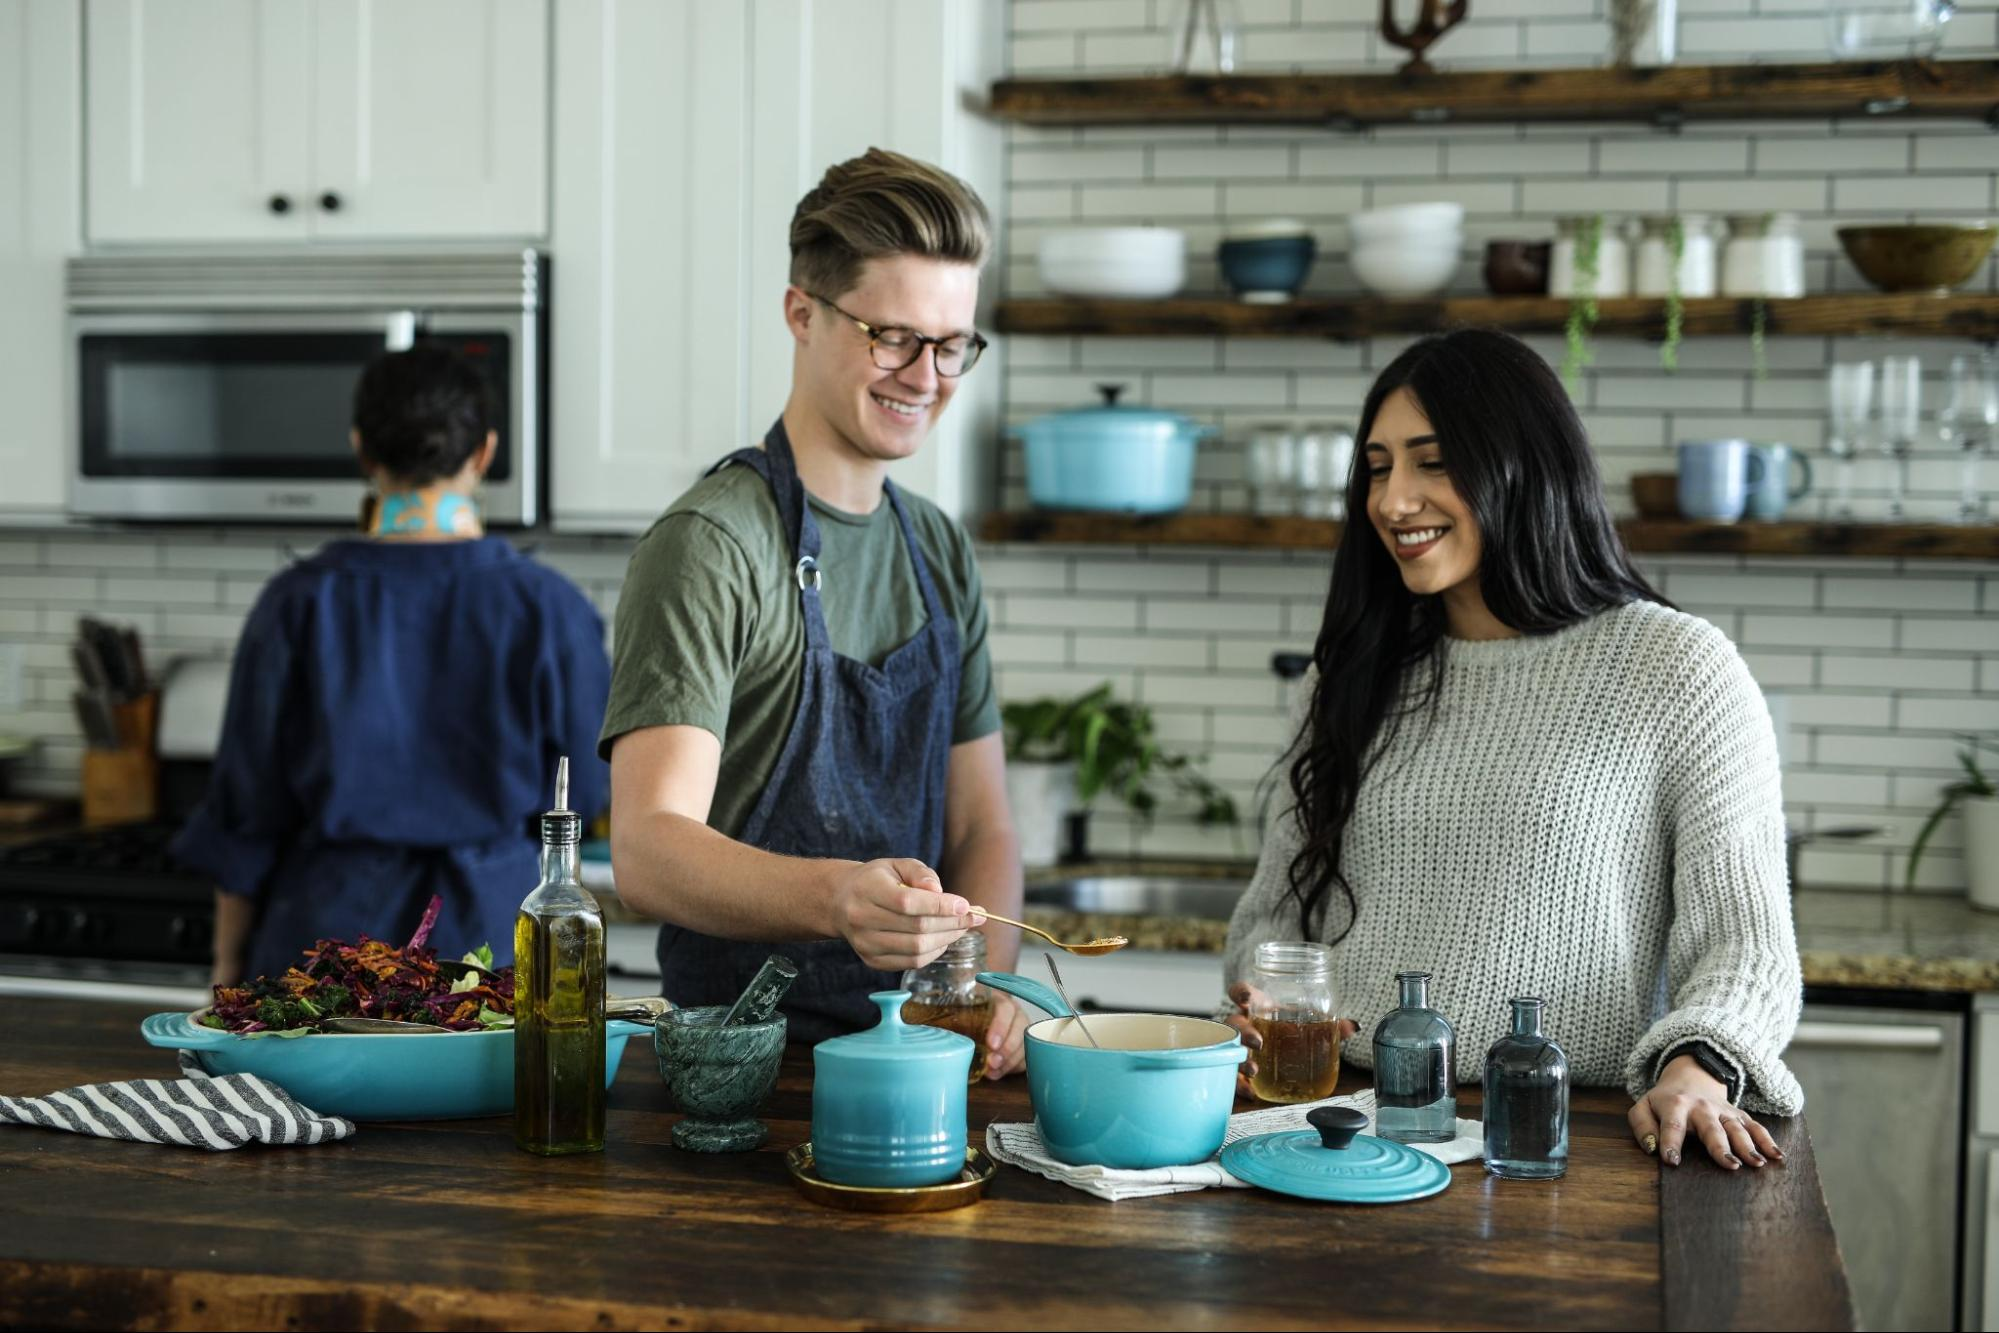 man-and-woman-in-cooking-class